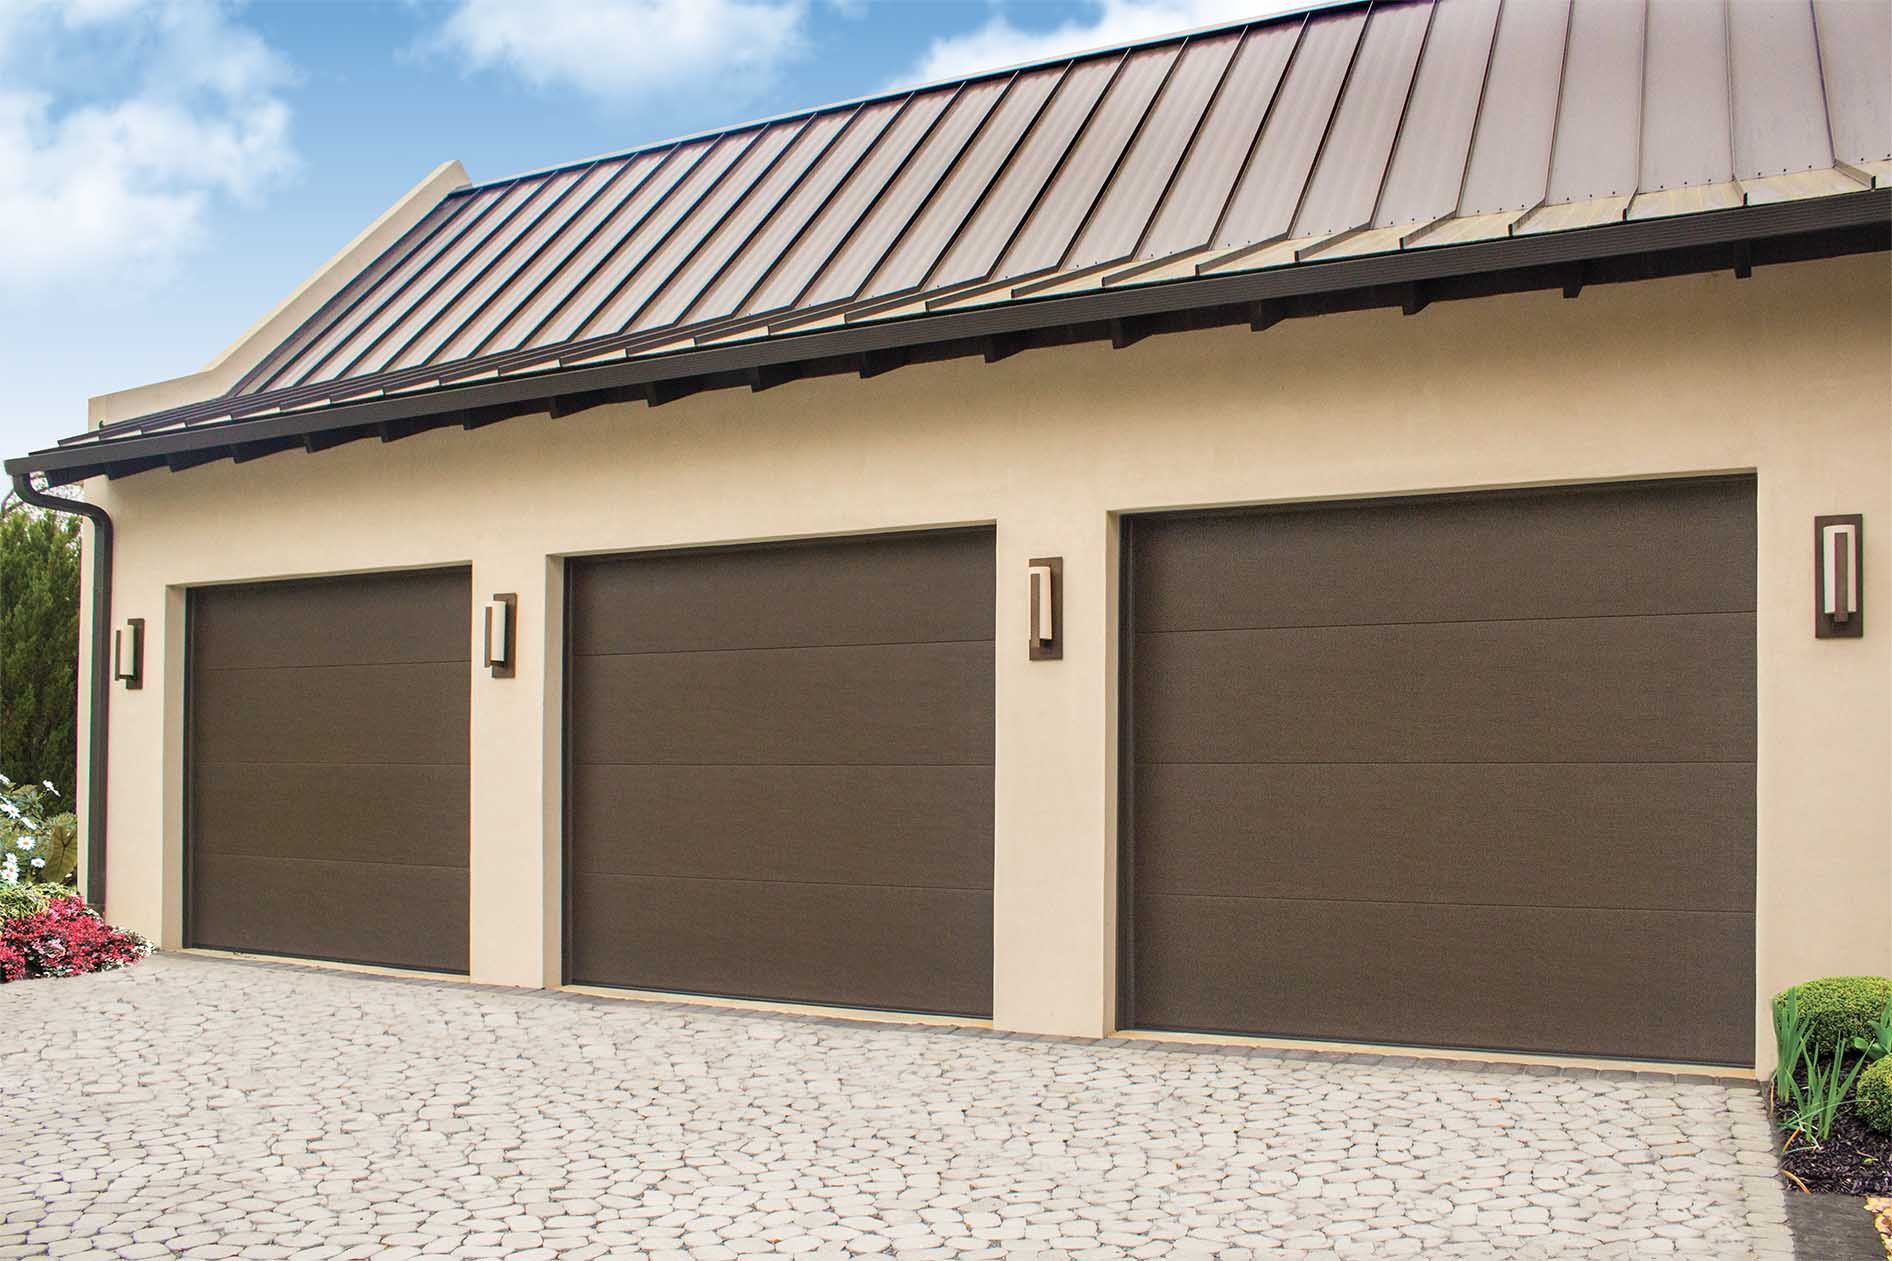 Wayne dalton 8500 colonial ranch d and d garage doors Wayne dalton garage doors